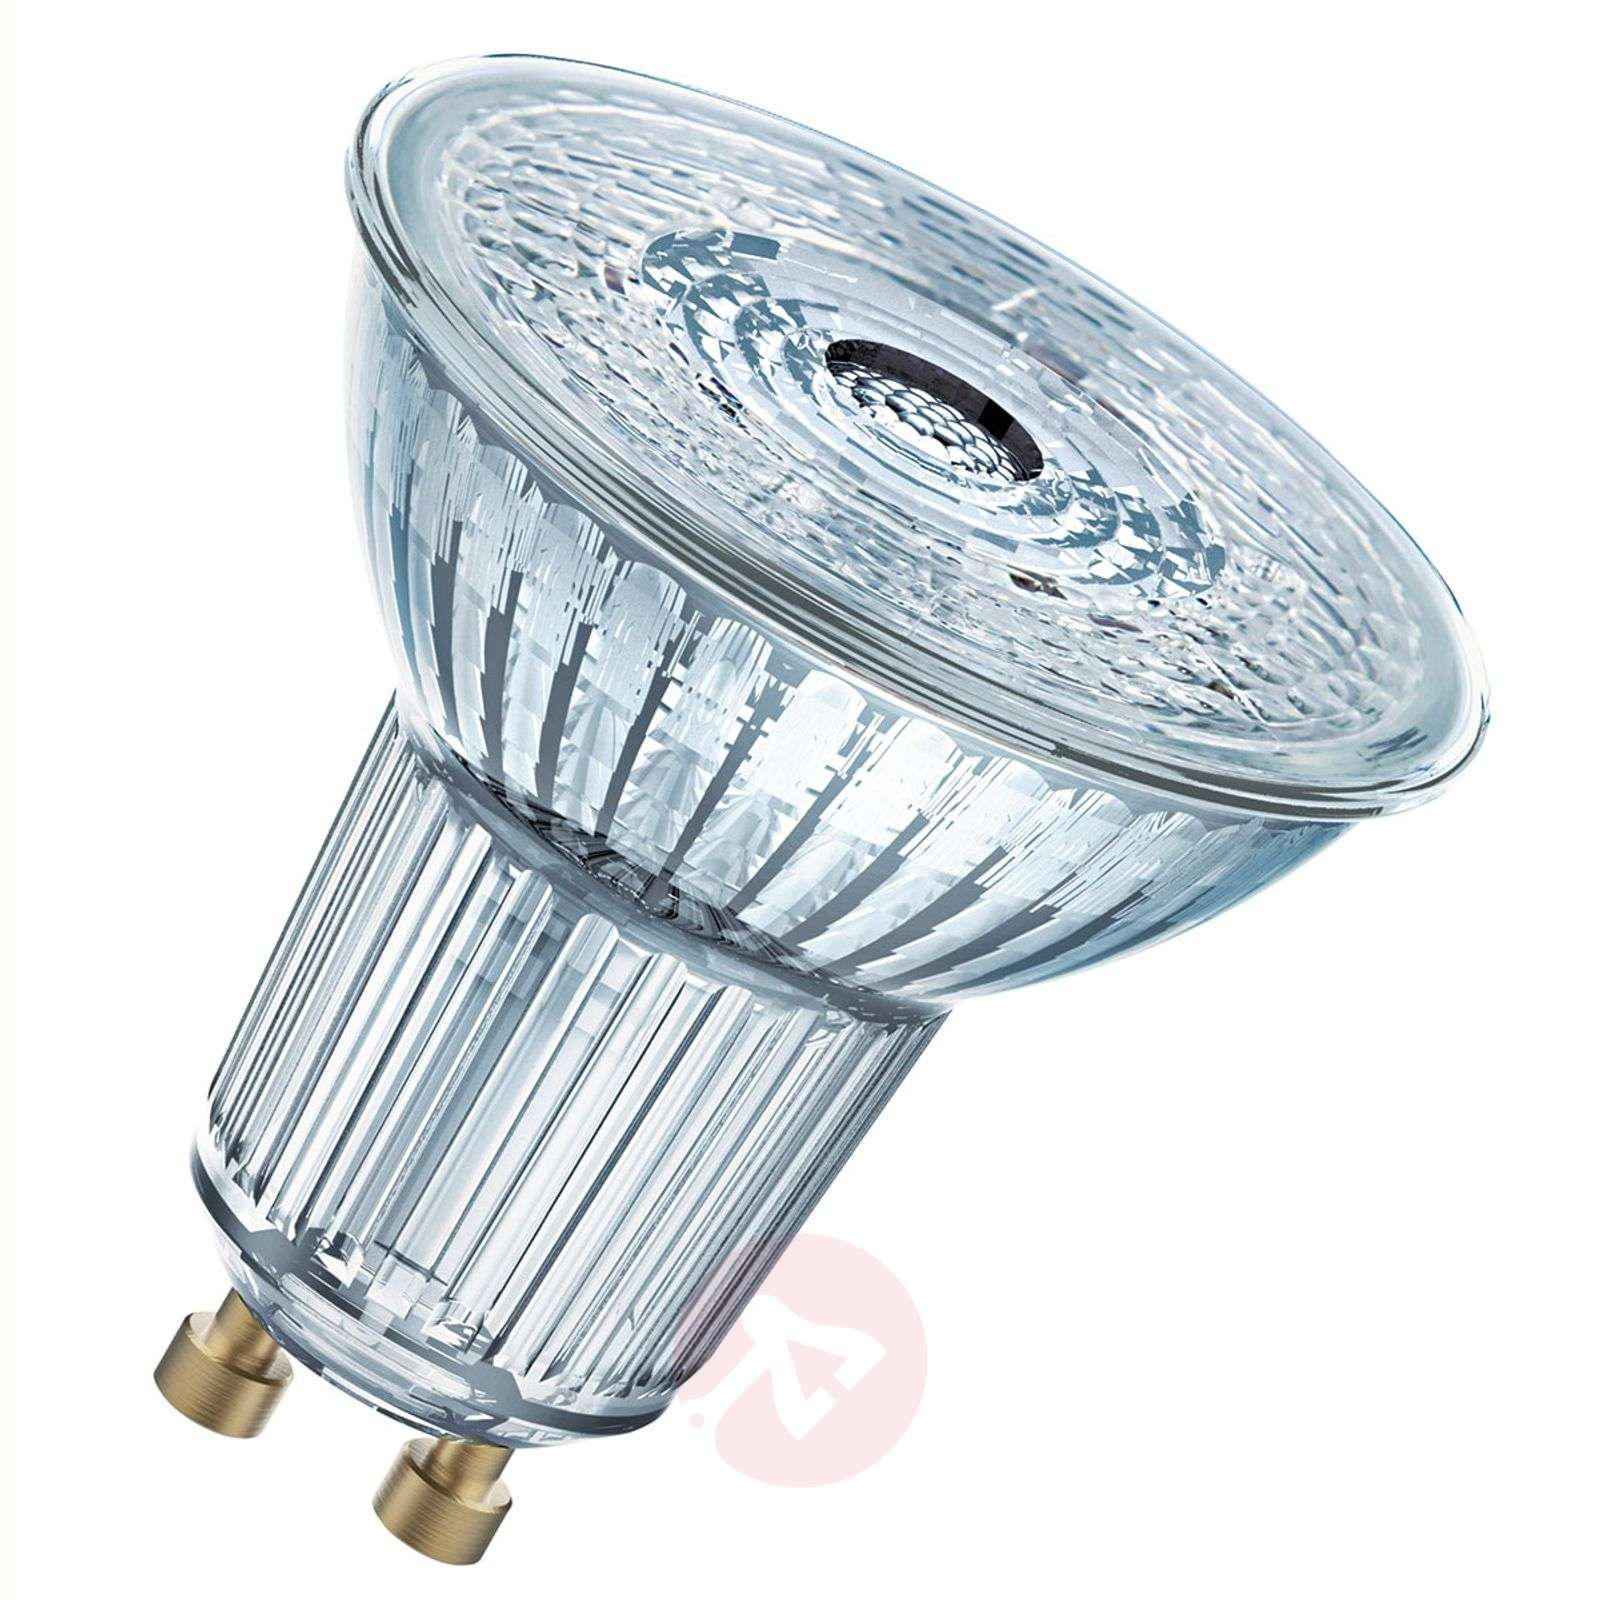 Réflecteur LED GU10 3,6W, blanc neutre, kit de 3-7262109-01